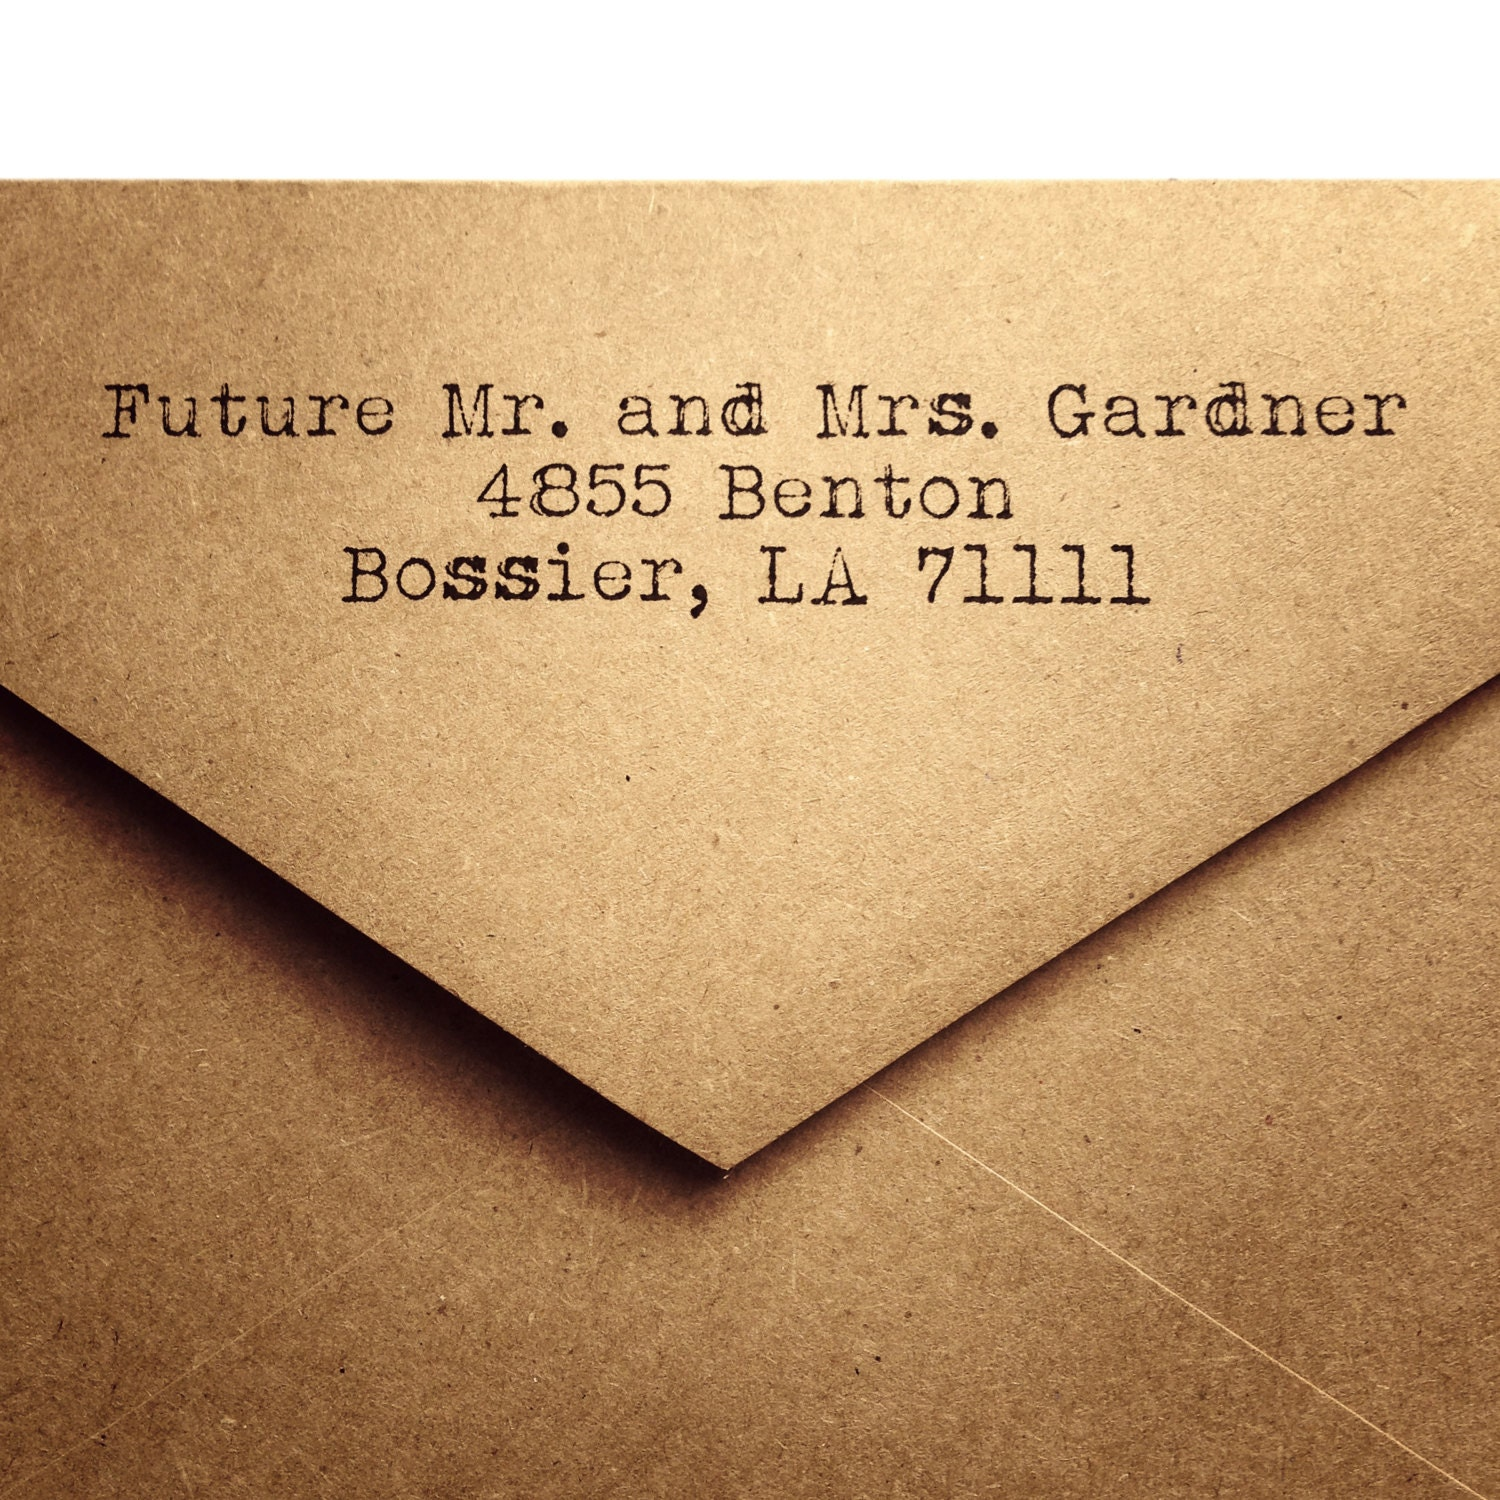 25 Rustic Return Address Envelopes Wedding Return Address Envelope KRAFT Envelope Rustic